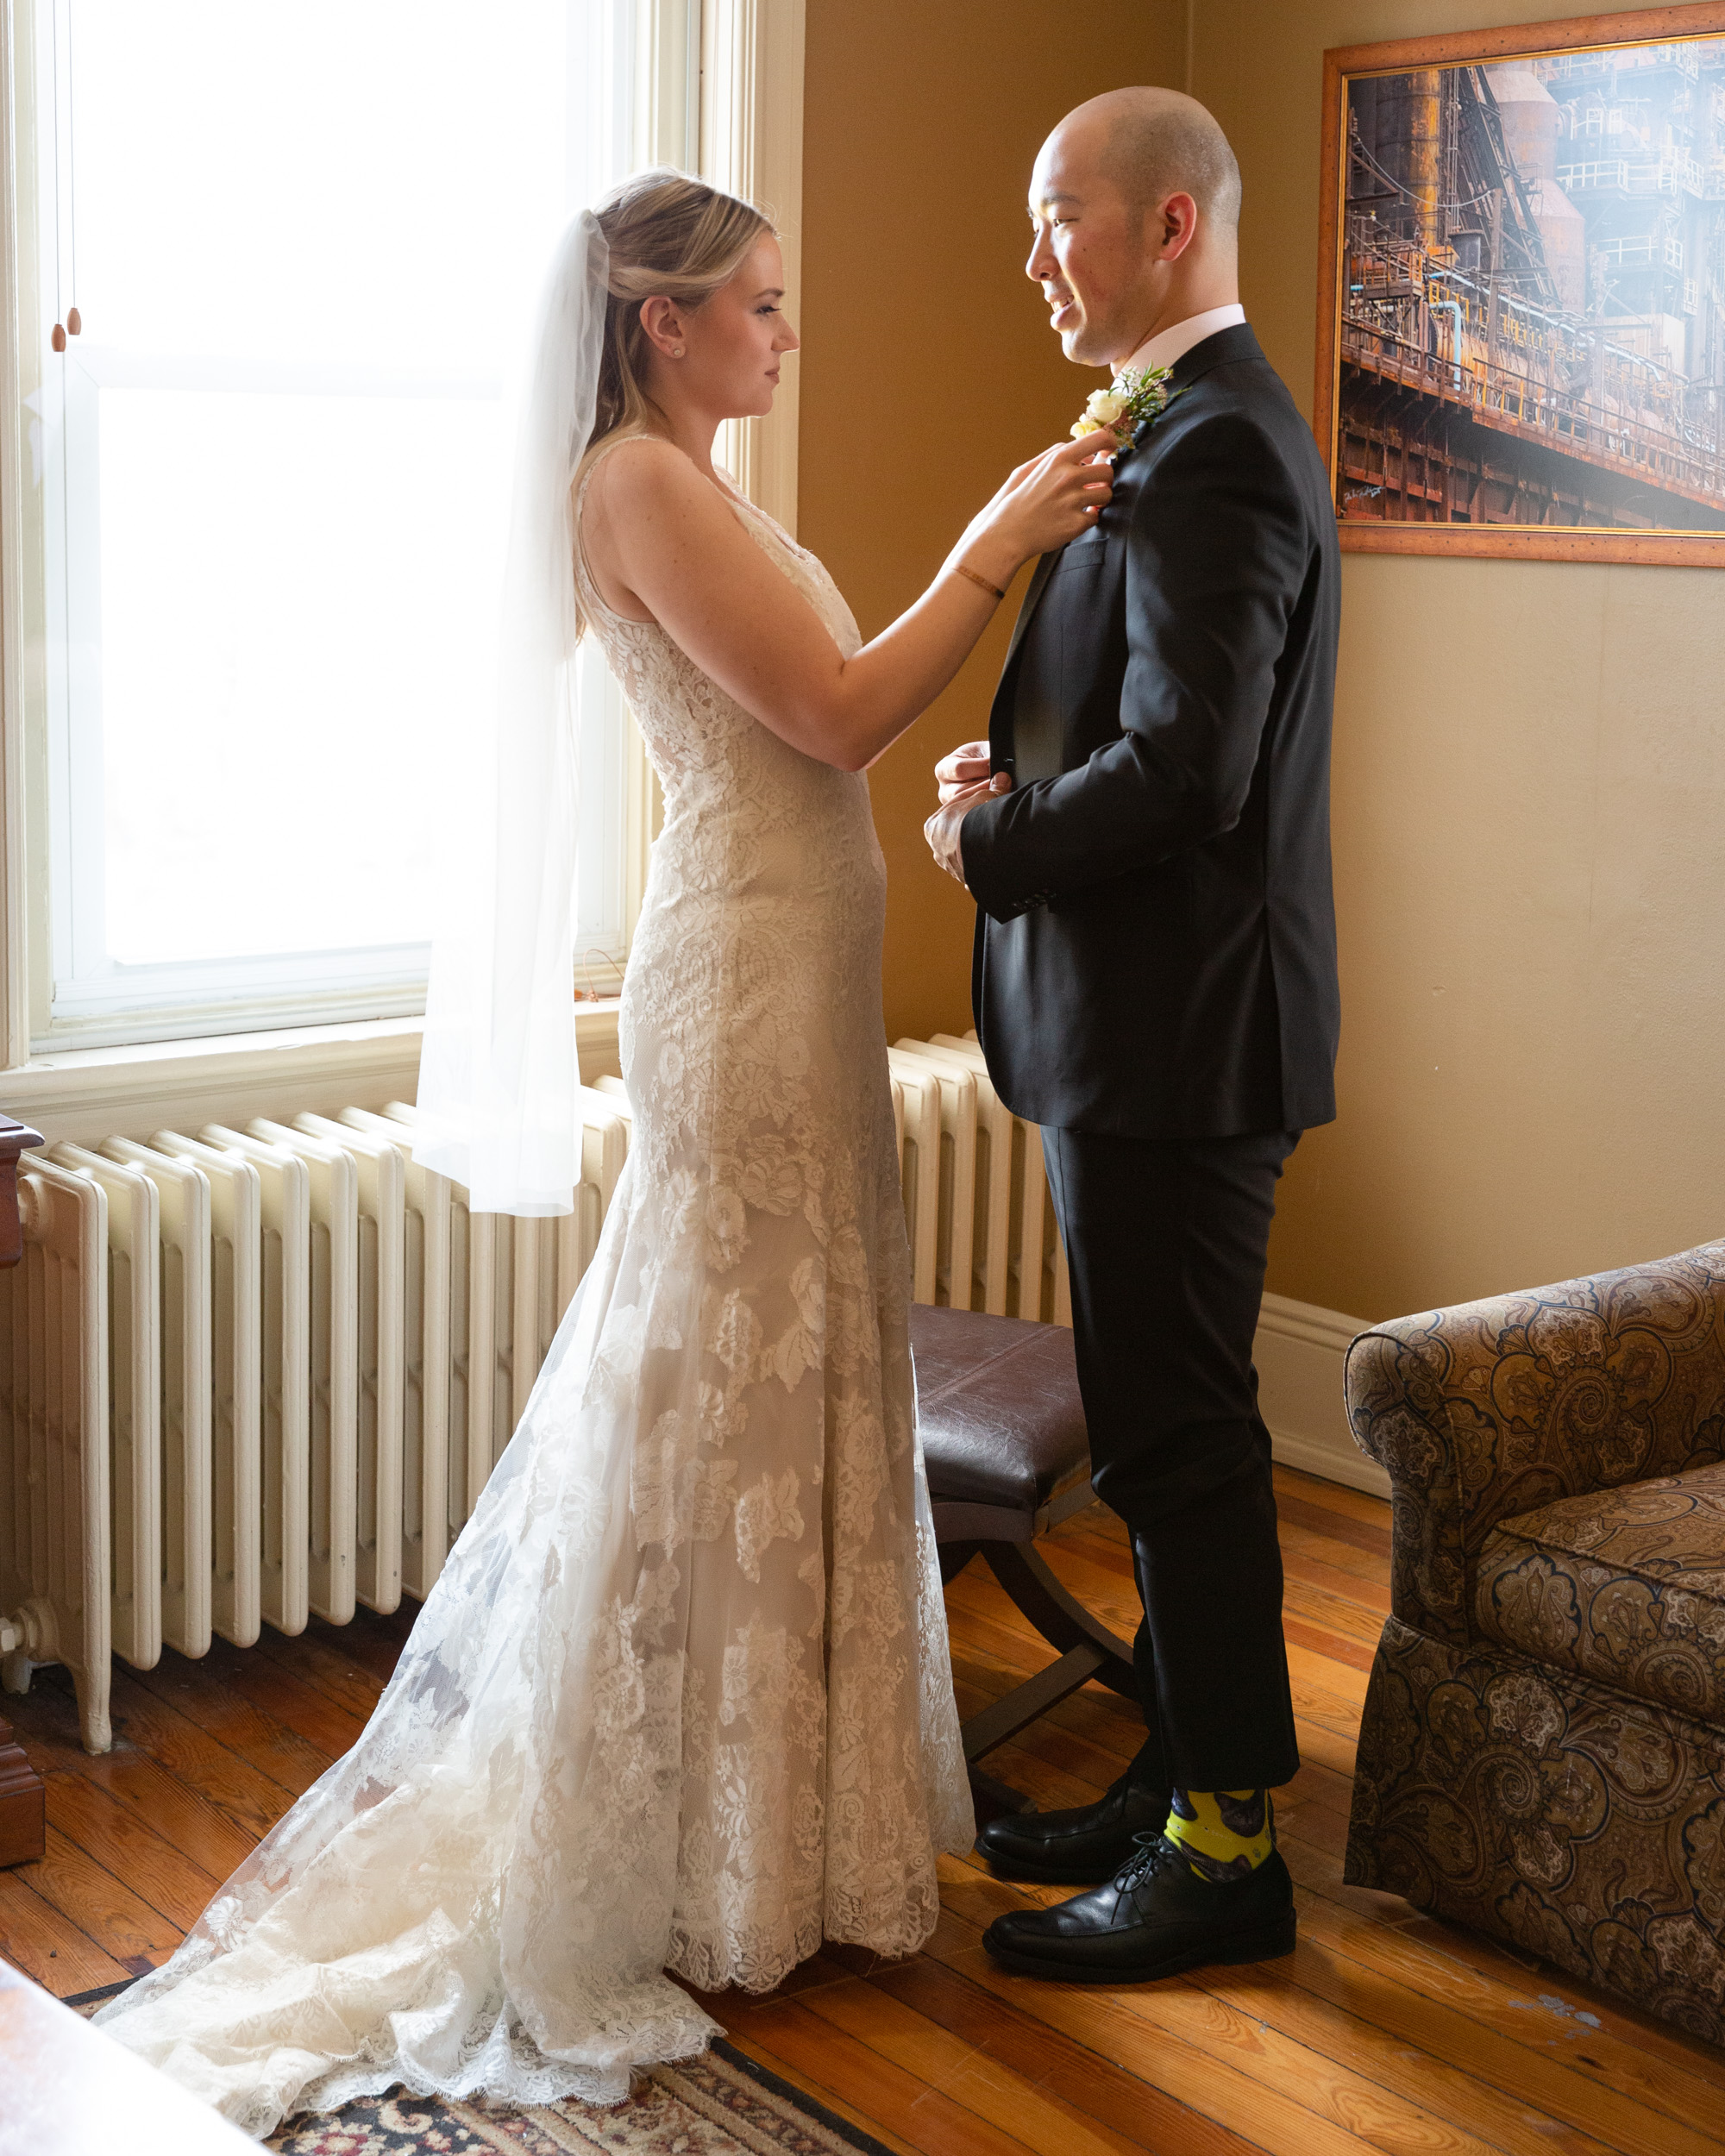 Elegant bride adjusts groom's tie while getting ready before their wedding ceremony at the Sayre Mansion in Bethlehem, PA by Laura Billingham Photography